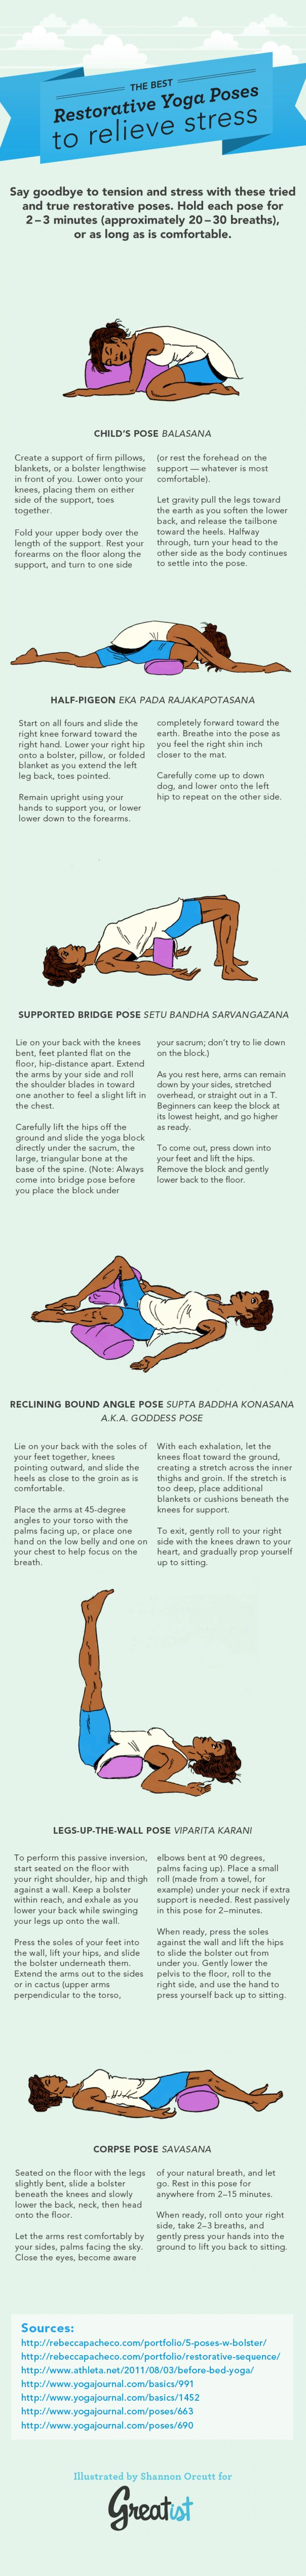 The Best Restorative Yoga Poses to Relieve Stress [Infographic] by Shannon Orcutt, greatist via visually #Infographic #Yoga #Restorative_Yoga #Stress